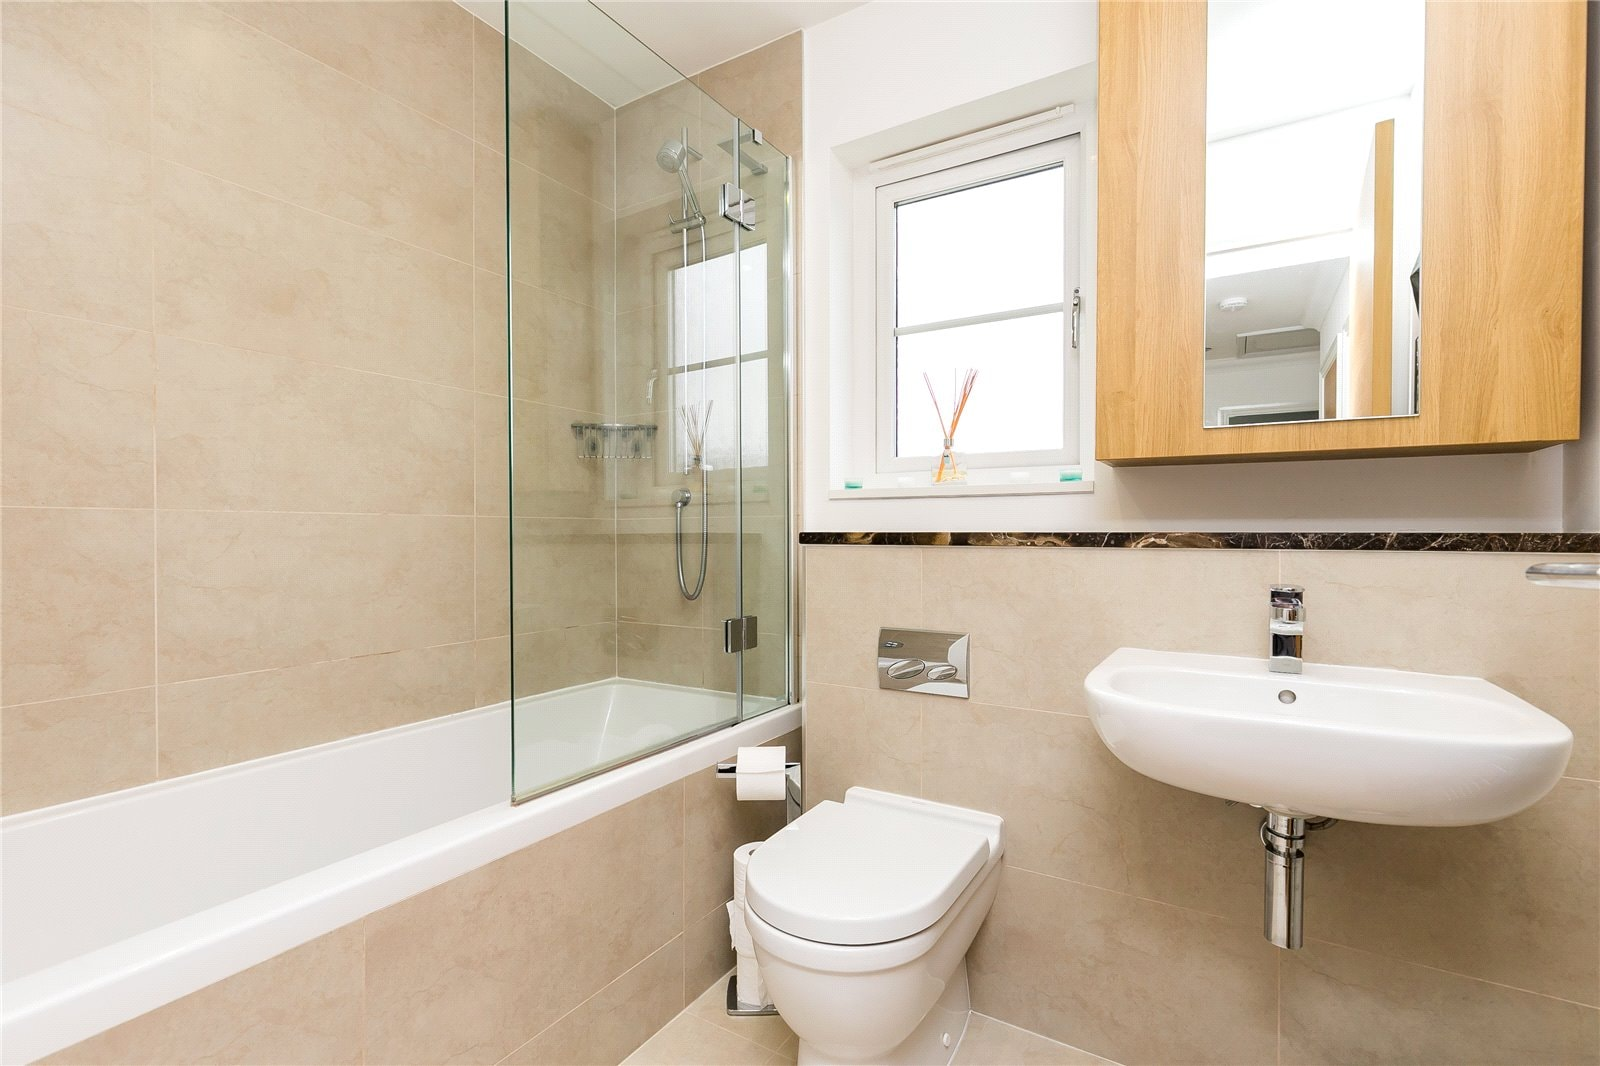 3 Deeside View bathroom